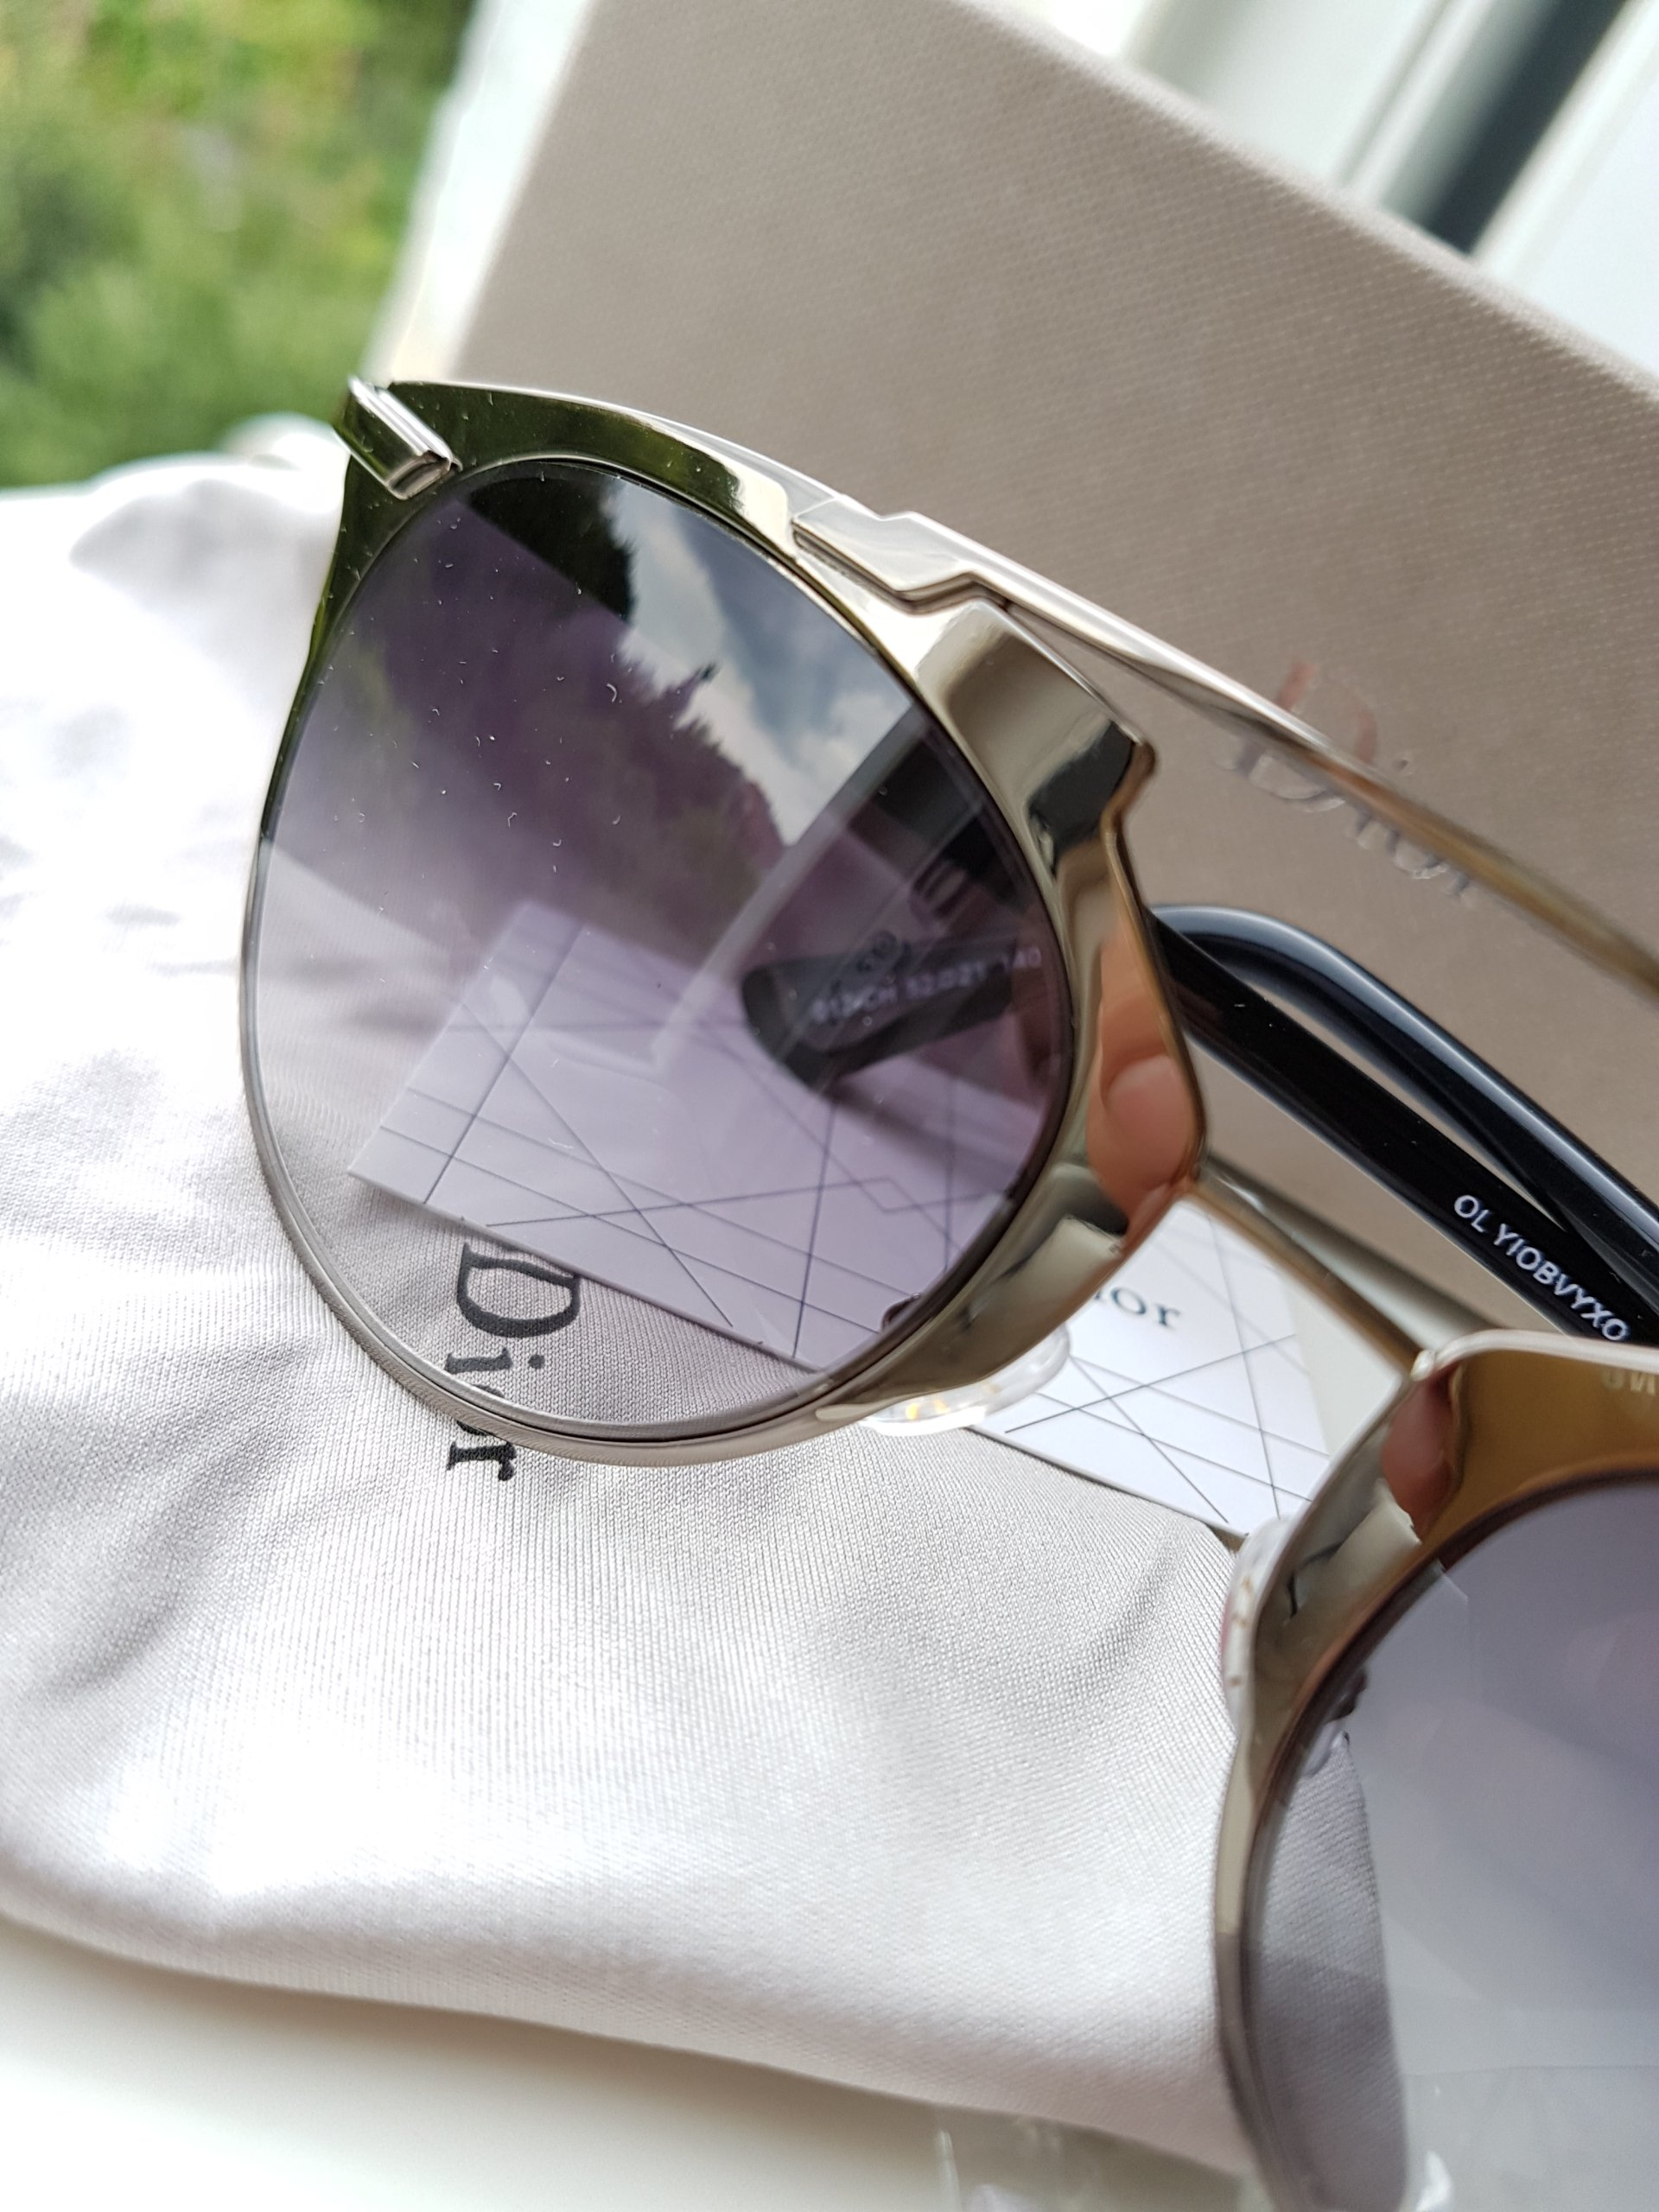 154c721e9a16 Okulary DIOR Reflected SO REAL rozm 52 21 gucci - 7206312942 ...